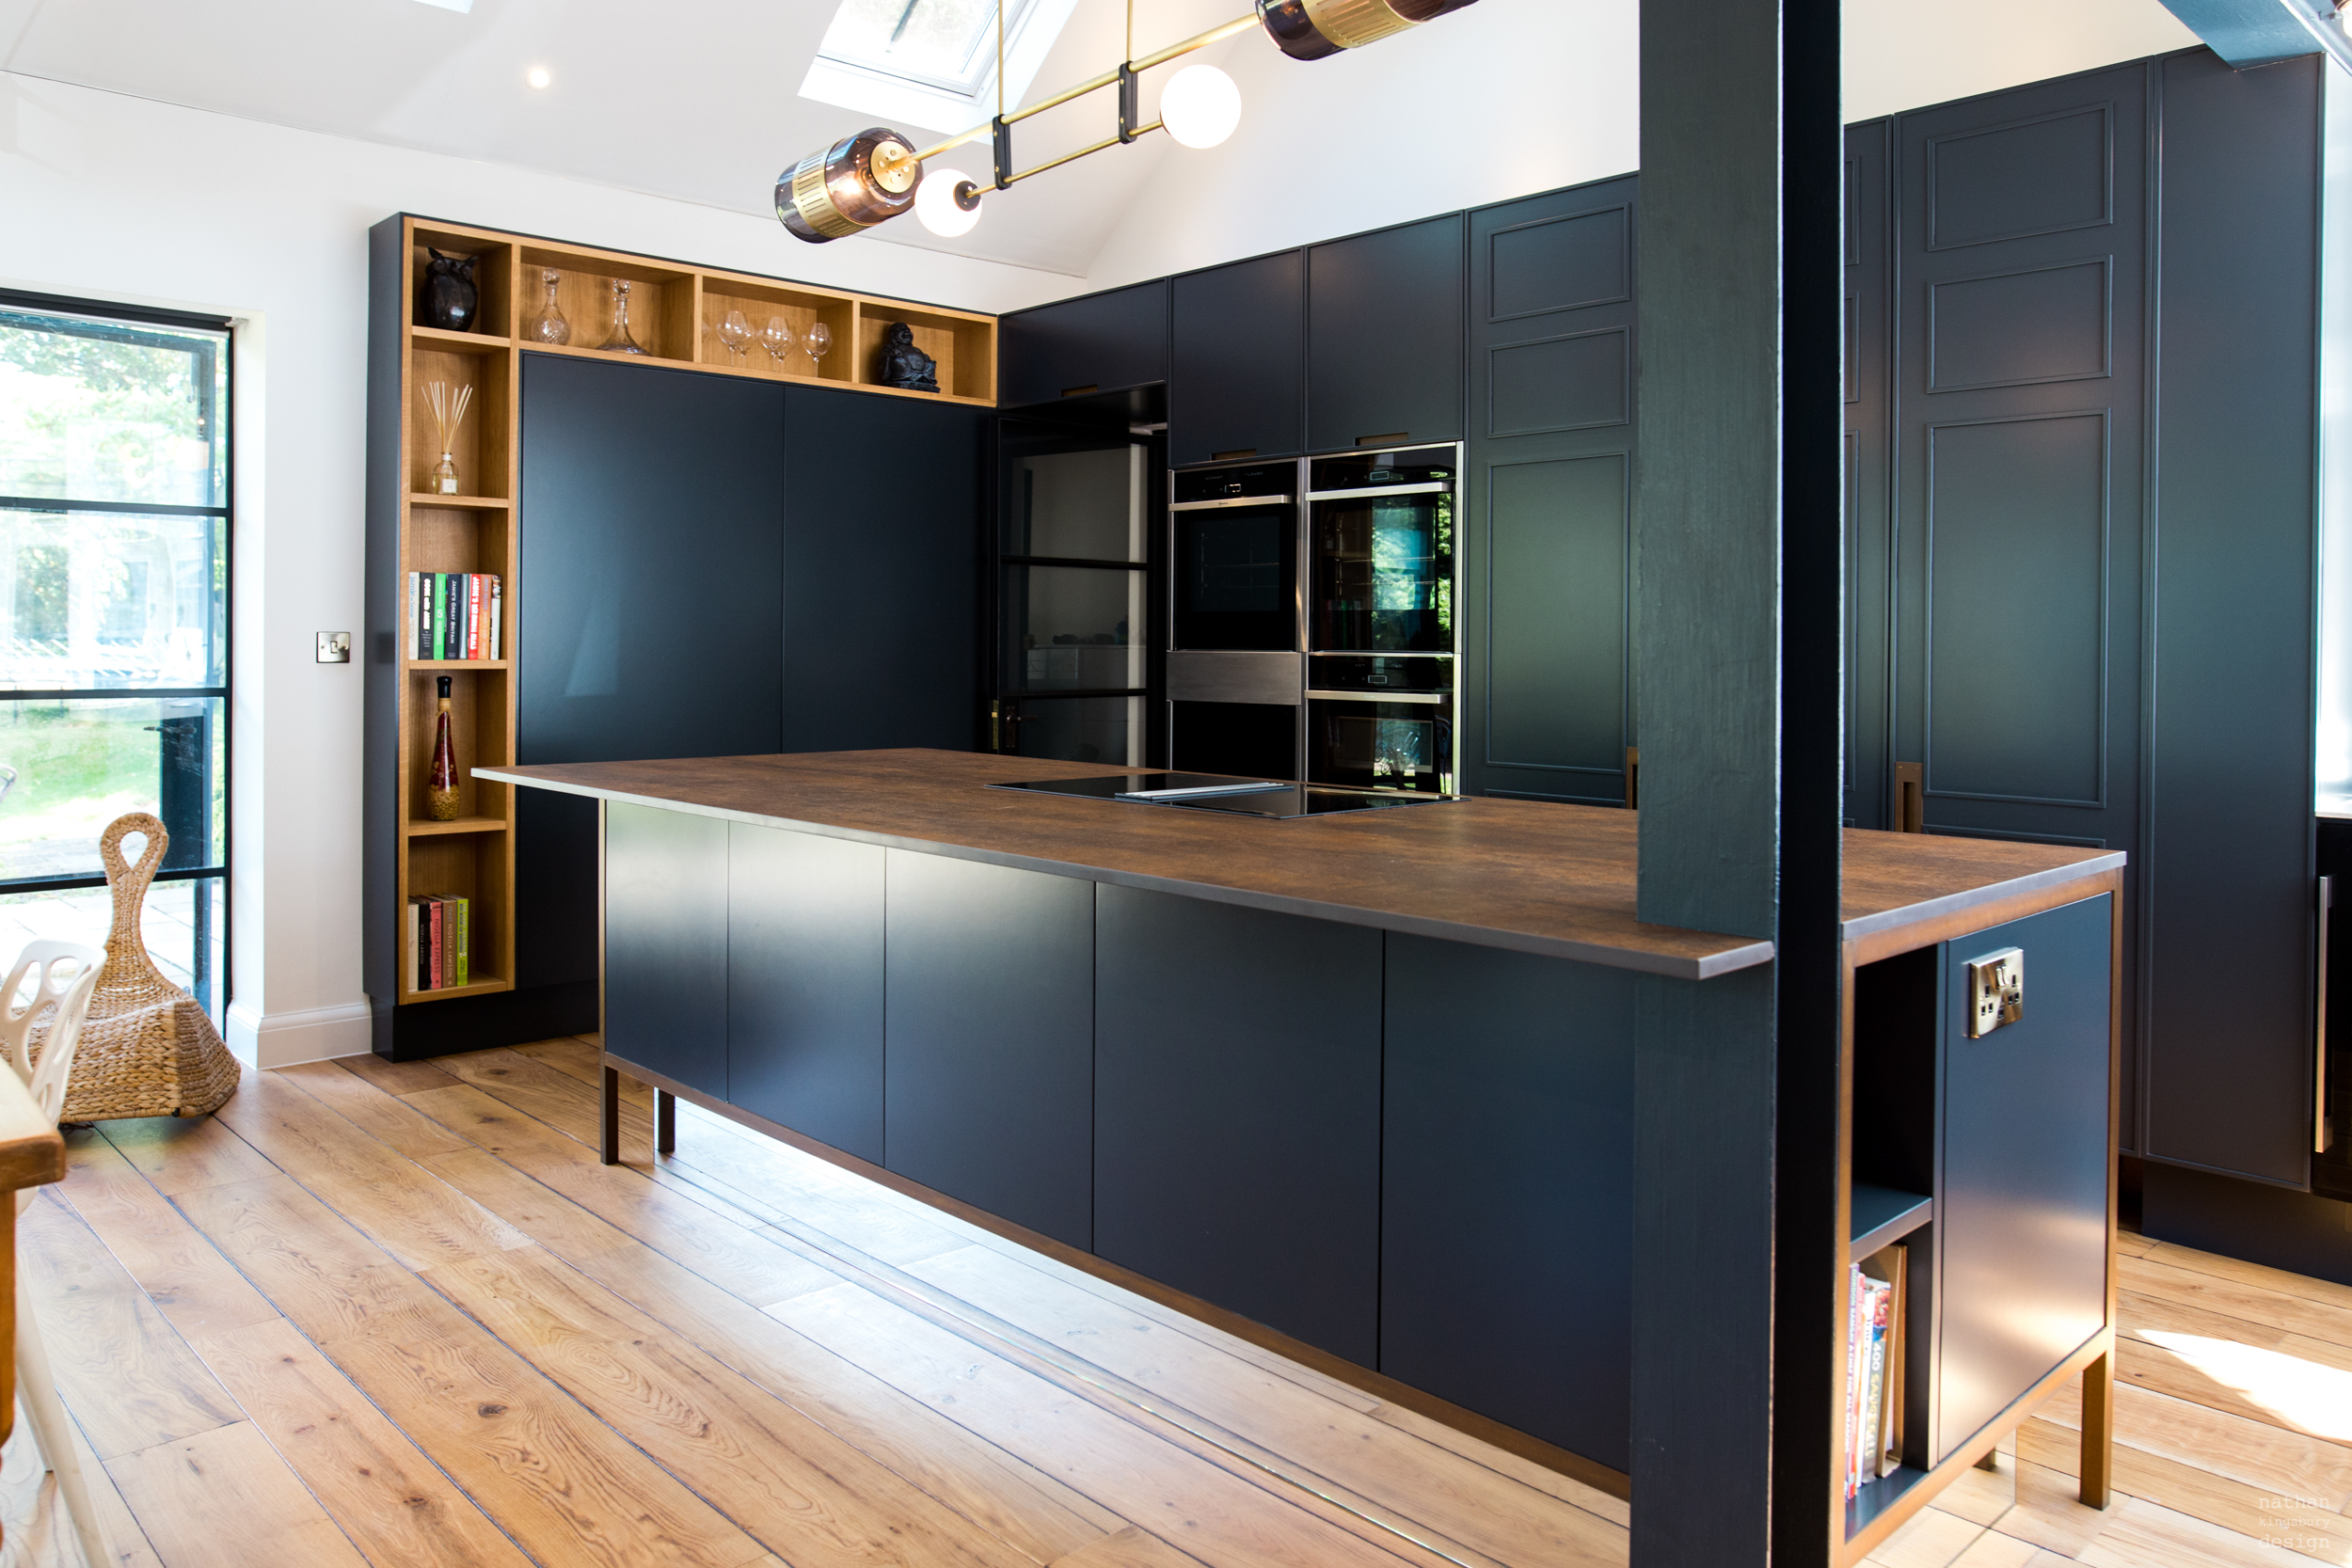 Simple black kitchen with wood